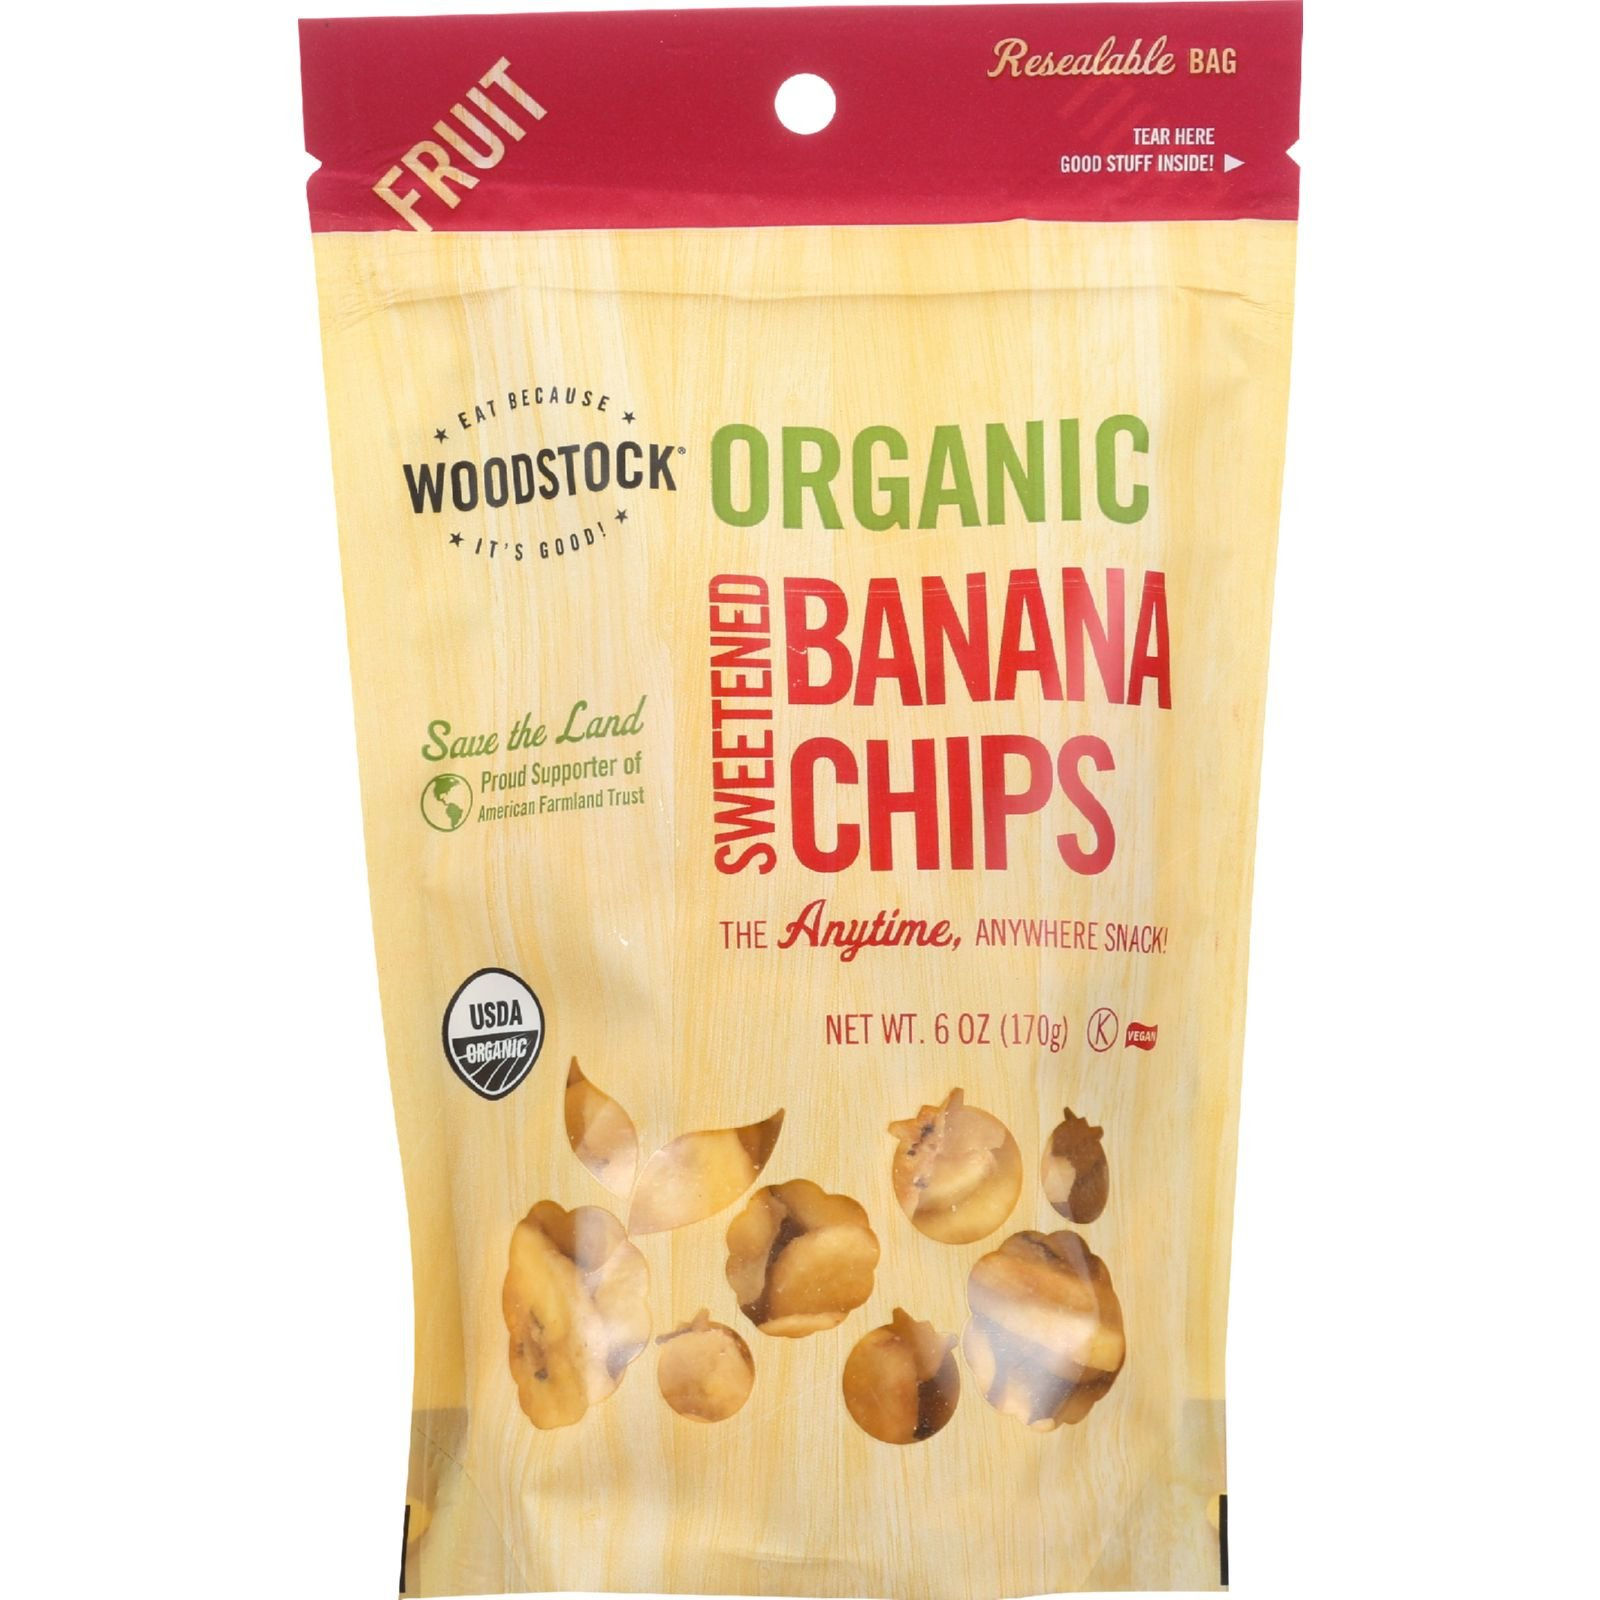 Woodstock Fruit- Organic - Banana Chips - Sweetened - 6 oz - case of 8 by Woodstock (Image #1)